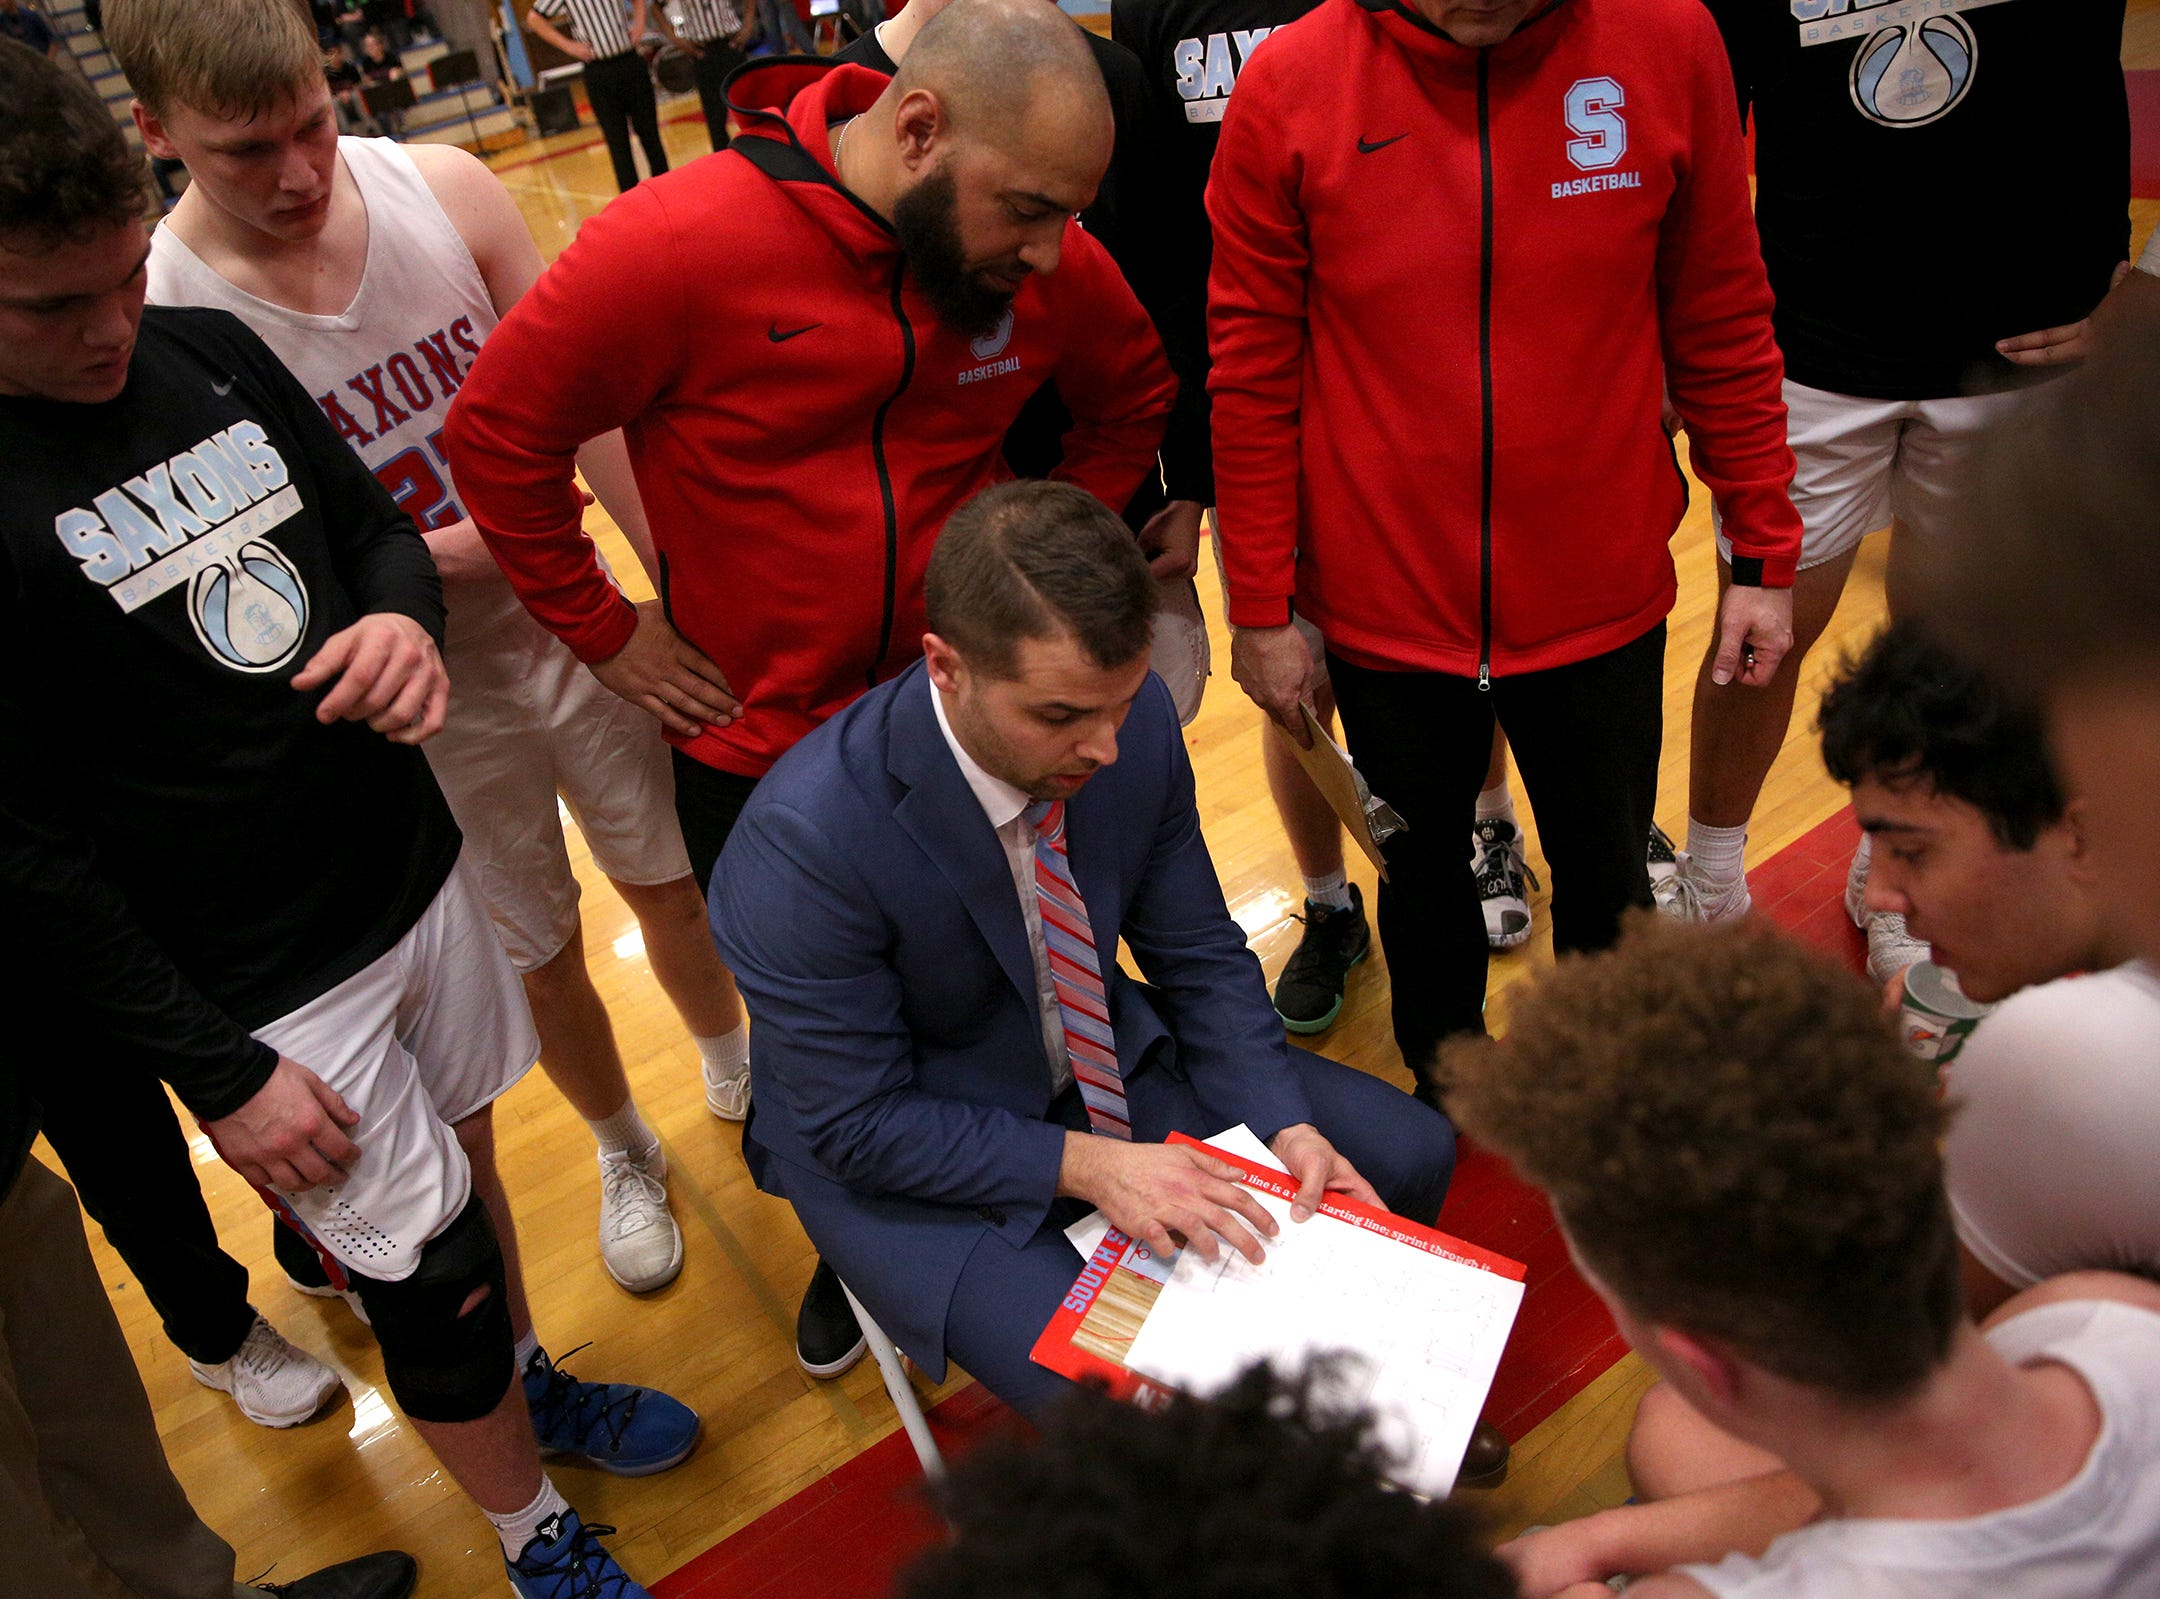 South Salem's head coach Tyler Allen goes over a play with his team during the South Salem vs. West Linn boys basketball OSAA playoff game at South Salem High School on Friday, March 1, 2019.